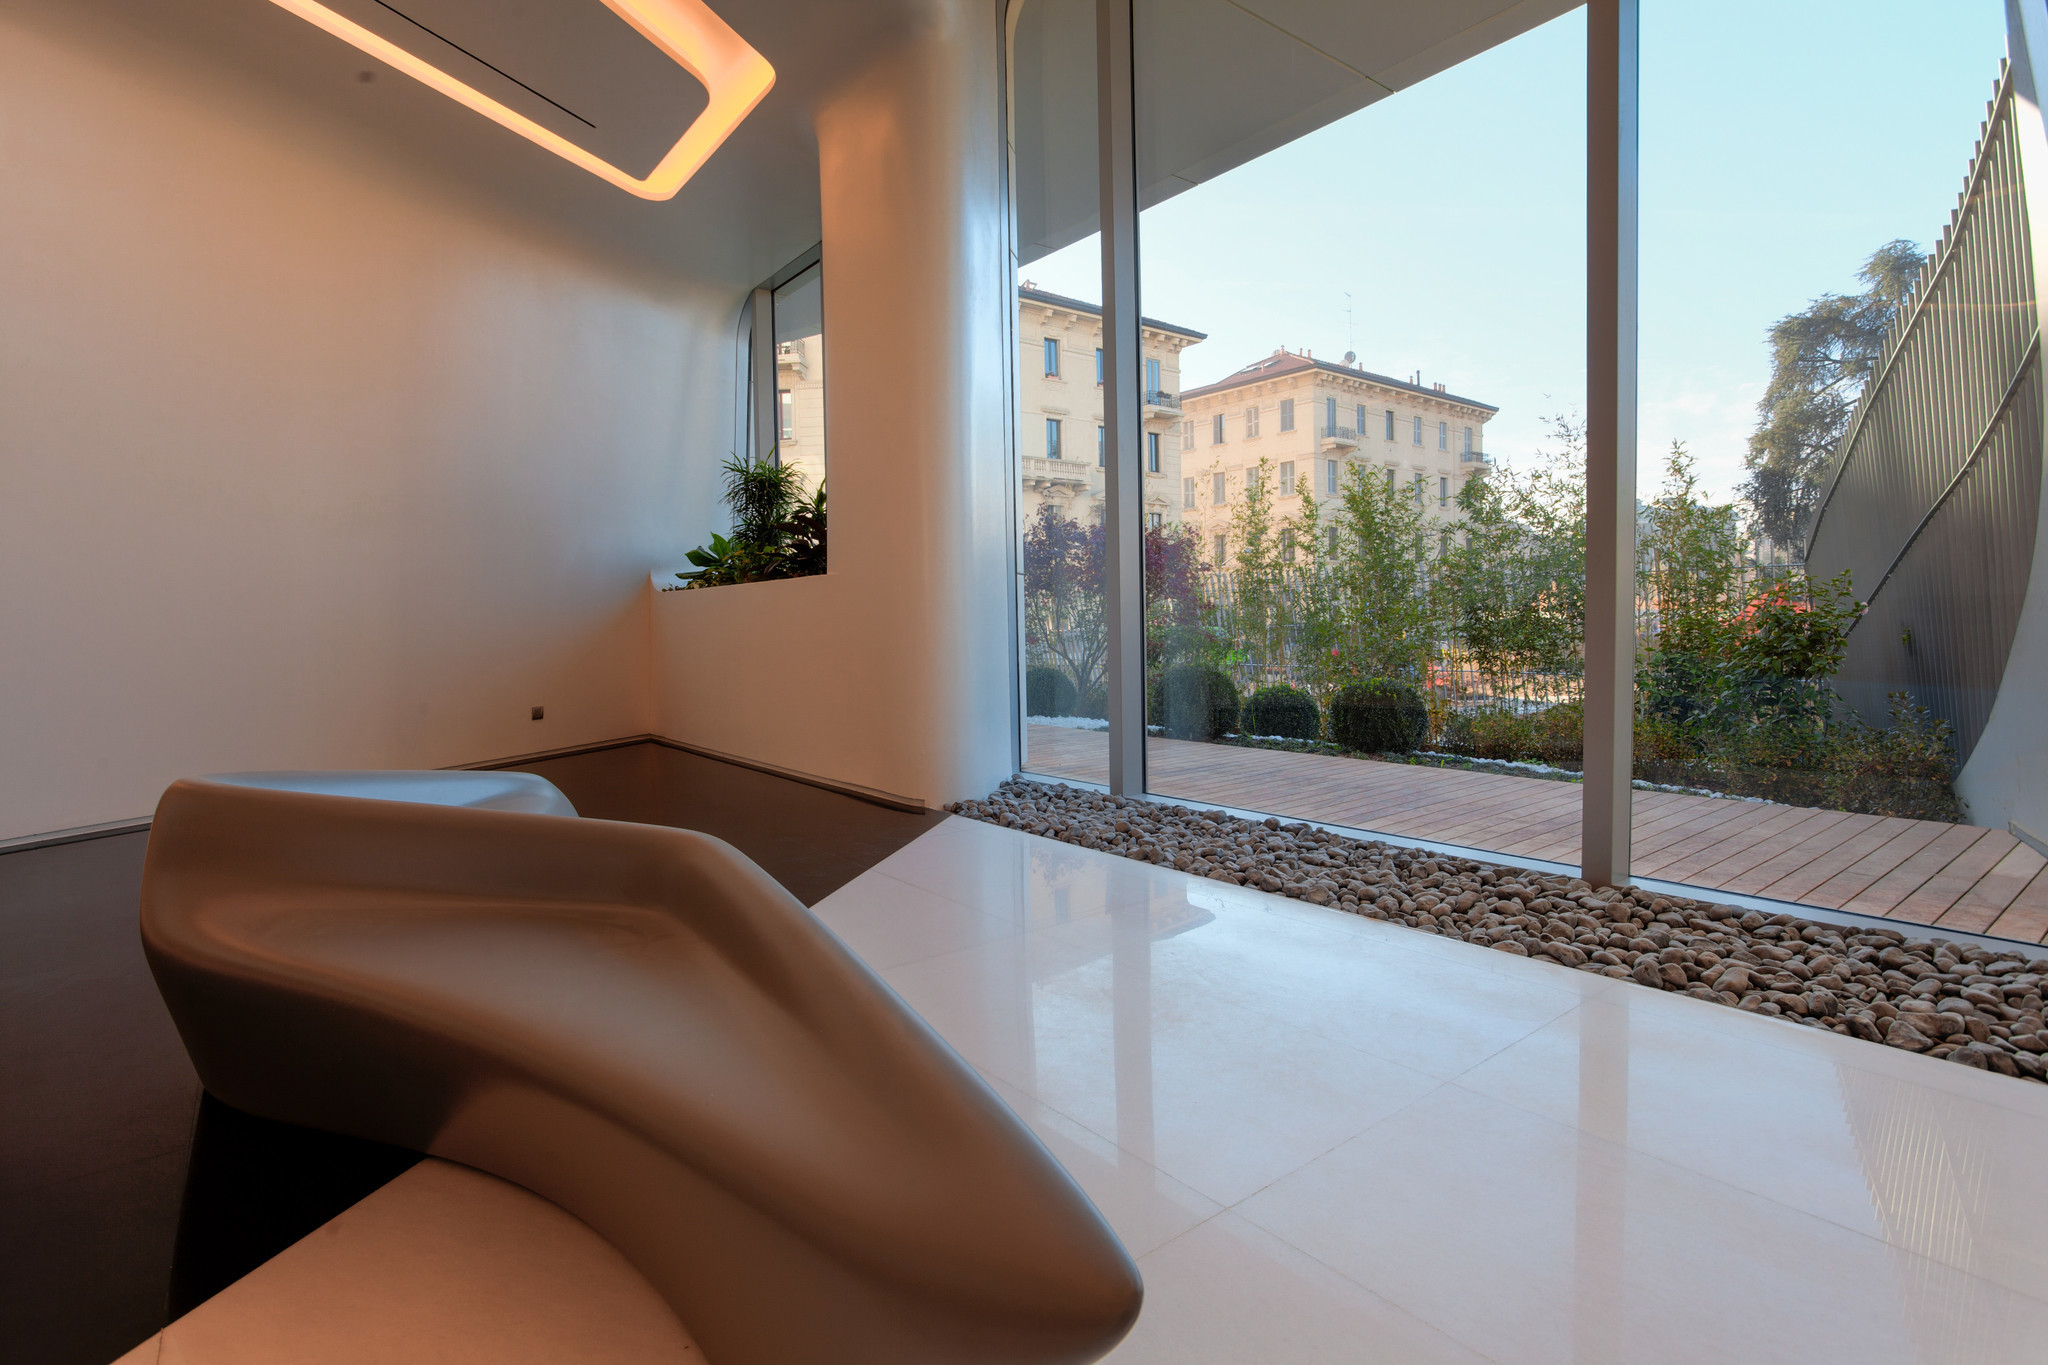 Property for sale in Italy, residential and business centre CityLife